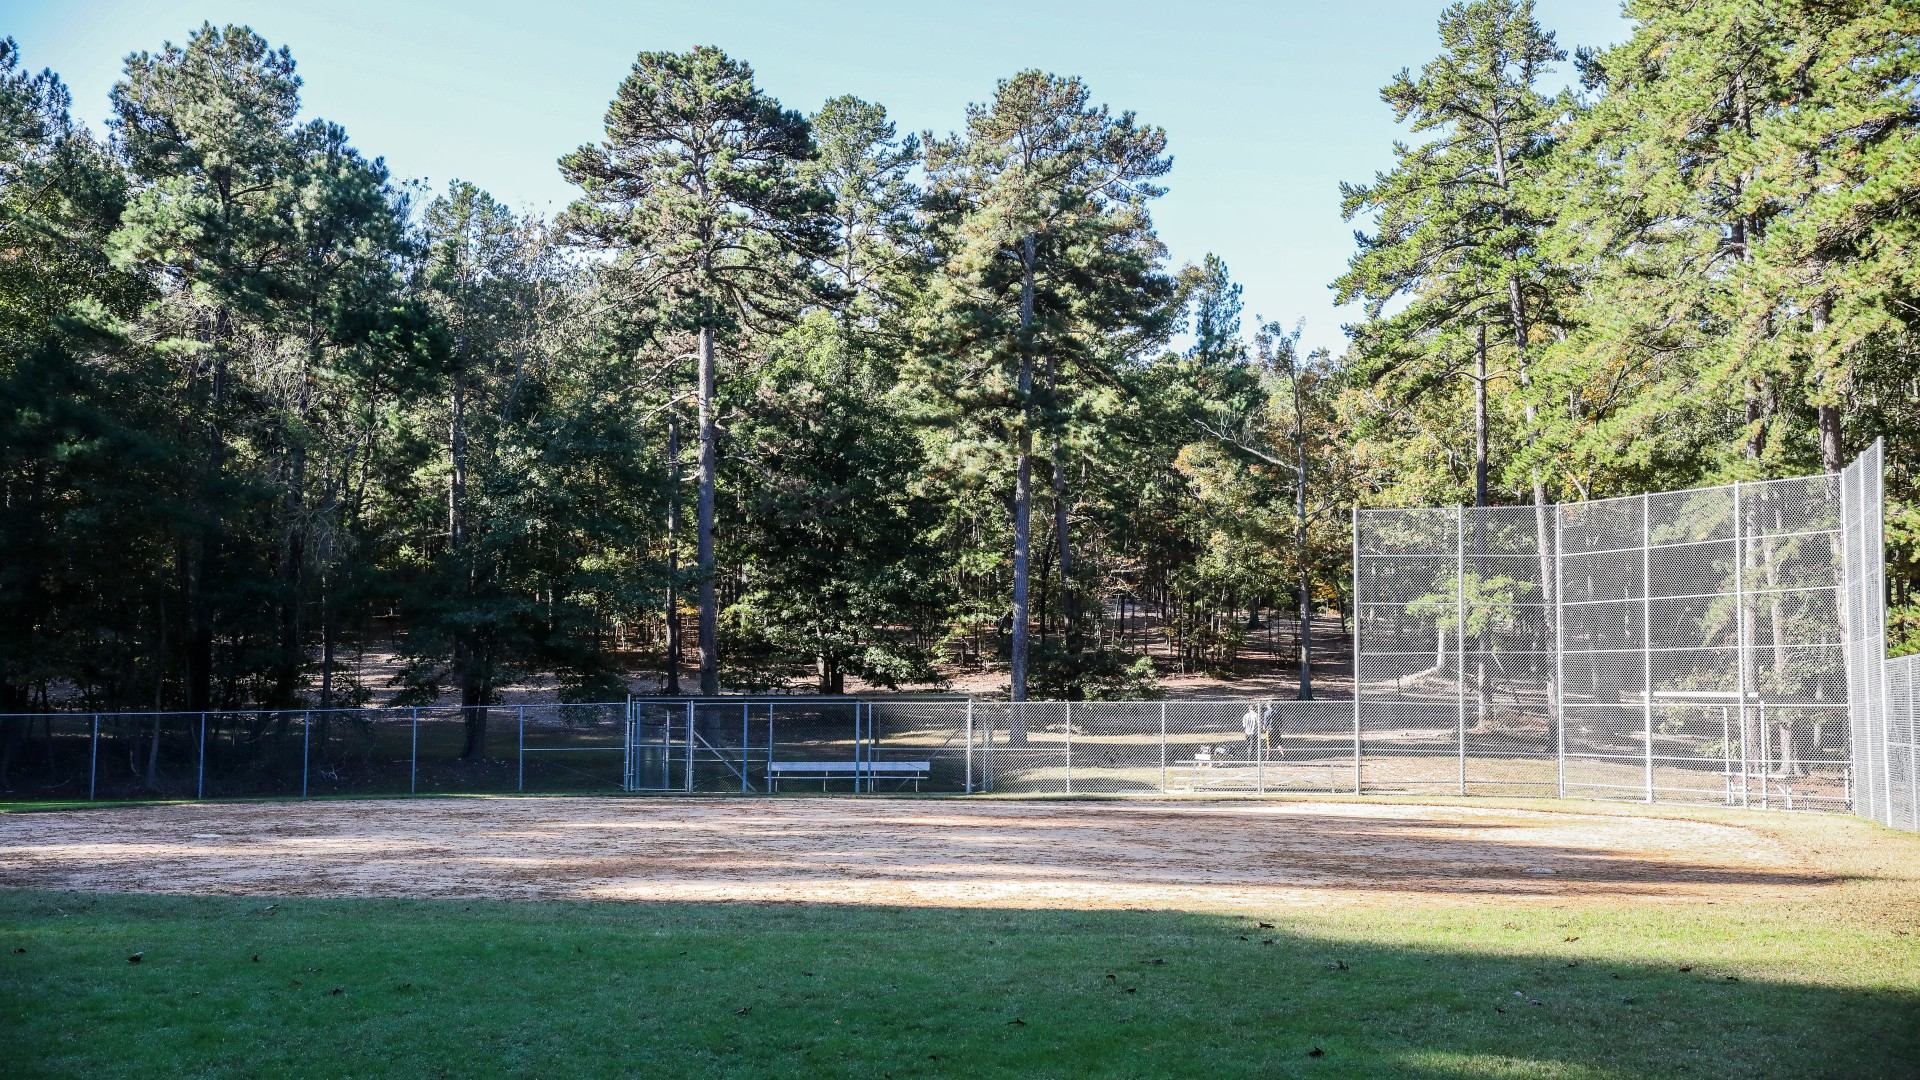 Baseball diamond and field at Kentwood Park